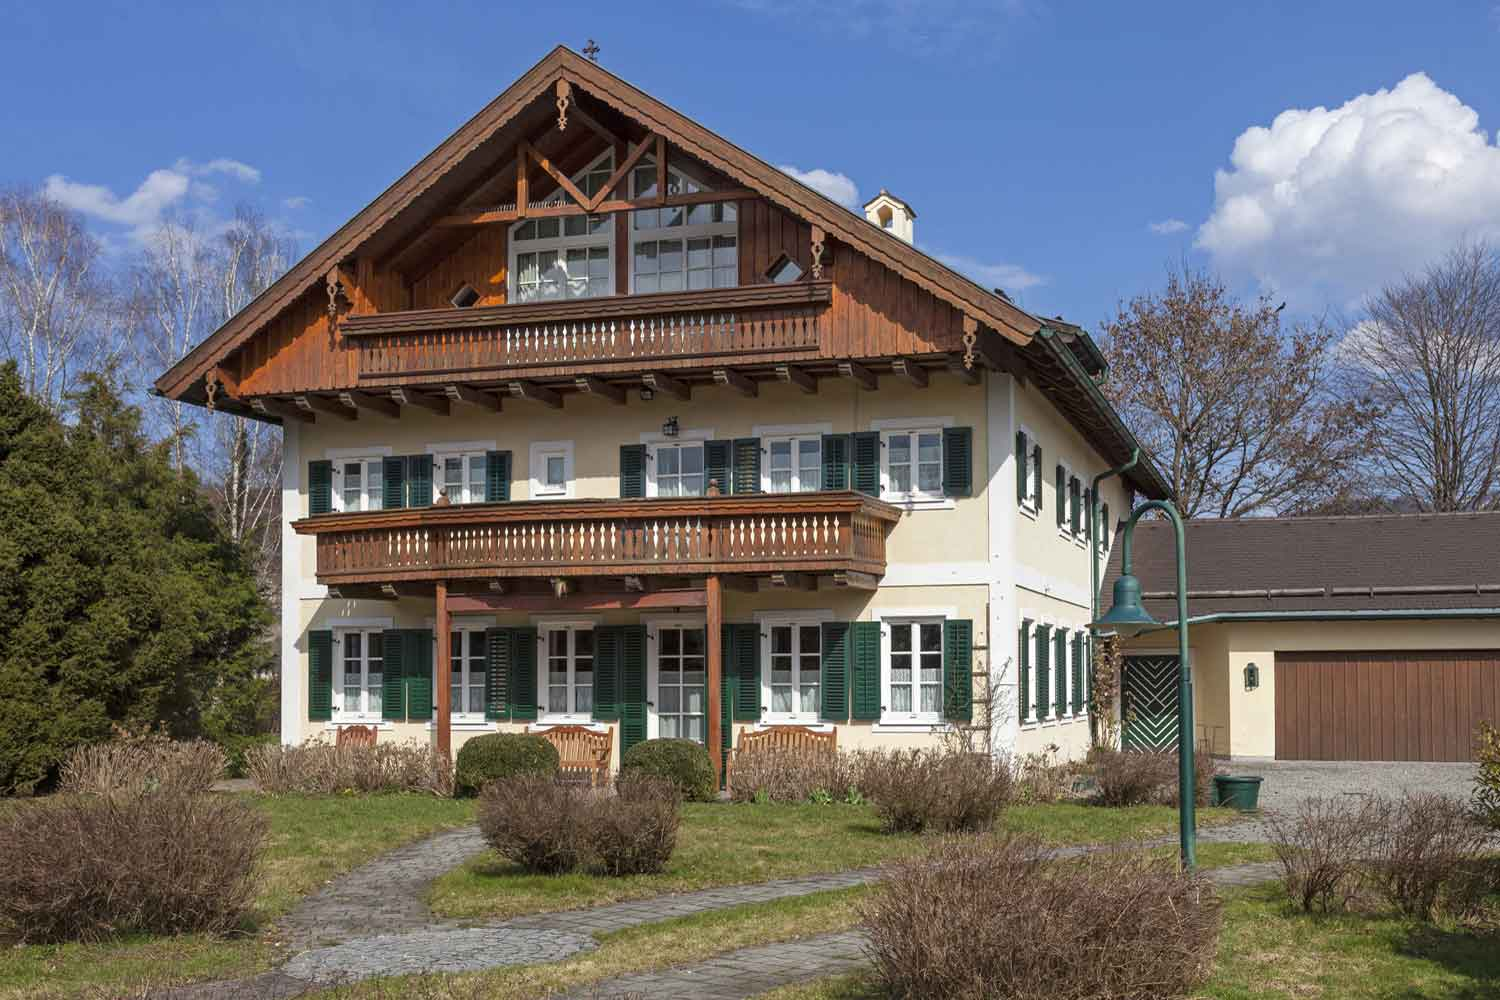 <b>Salzburg, Austria</b><br/><i>7 Bedrooms, 4,840 sq. ft.</i><br/>Seven-bedroom manor adjacent to a nature preserve